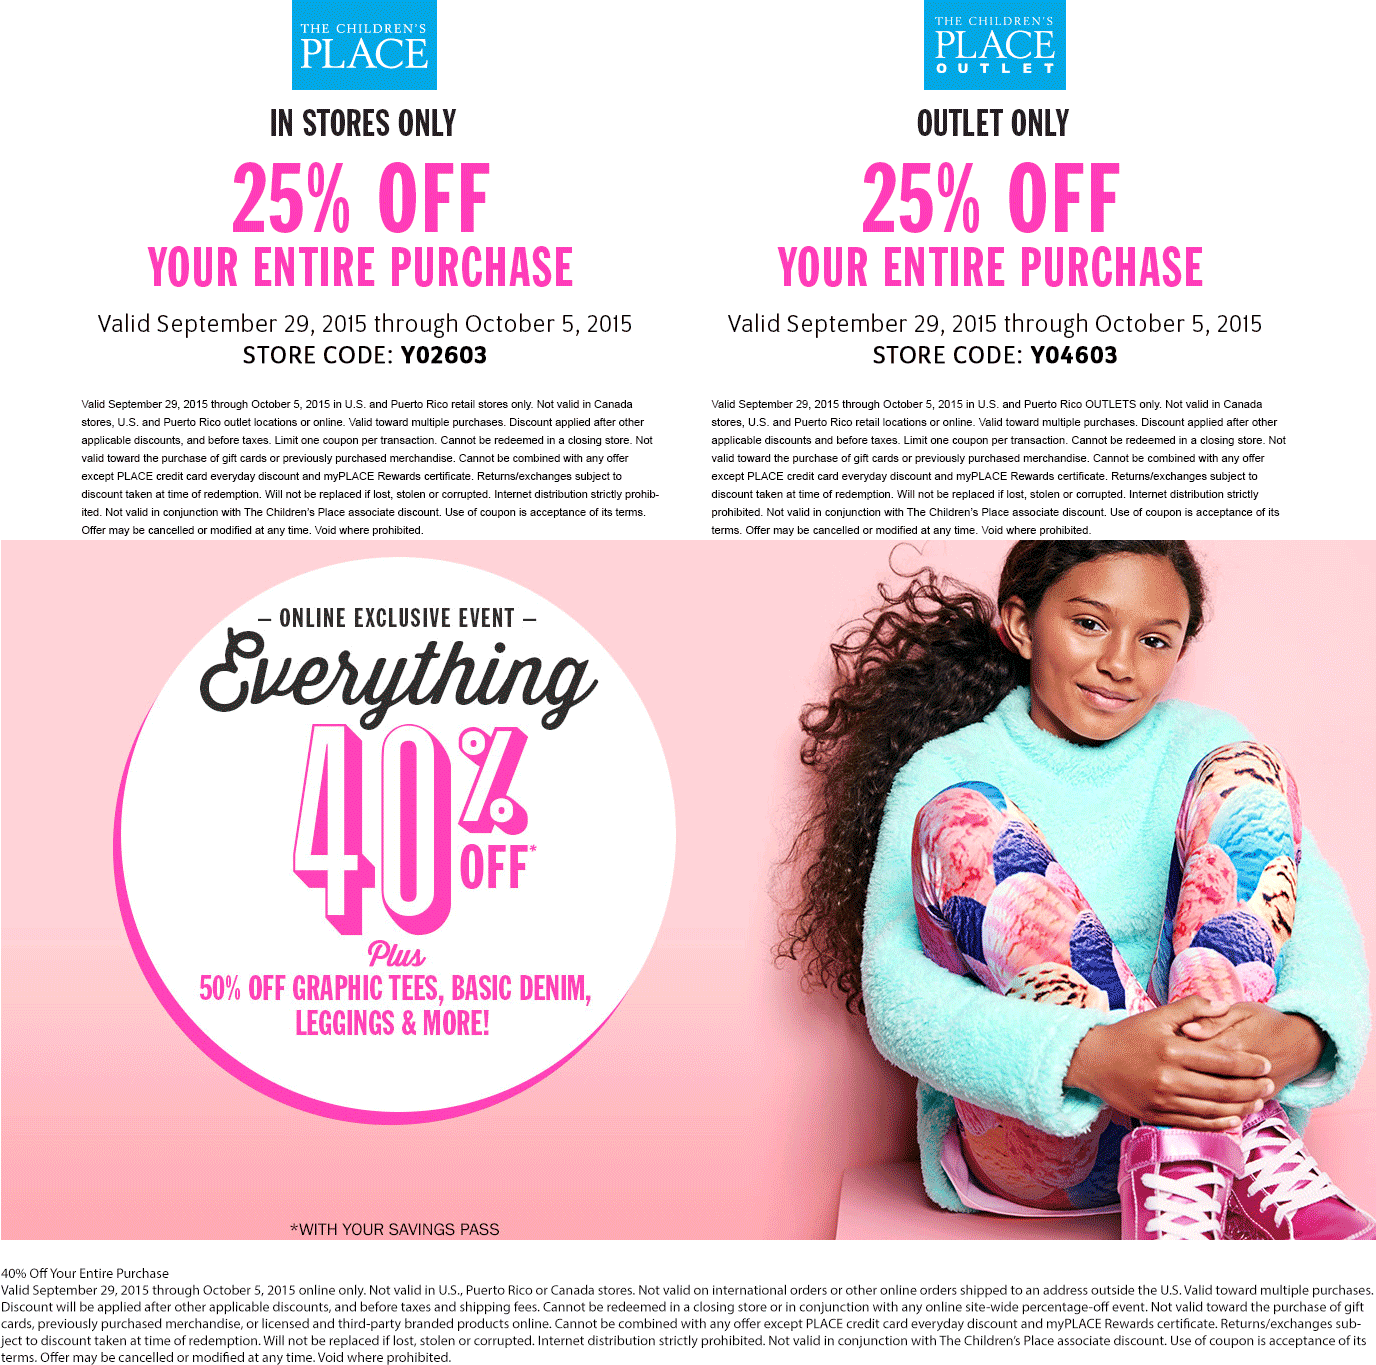 The Childrens Place Coupon April 2017 25% off at The Childrens Place & outlet locations, or 40% online via promo code ONLINE40